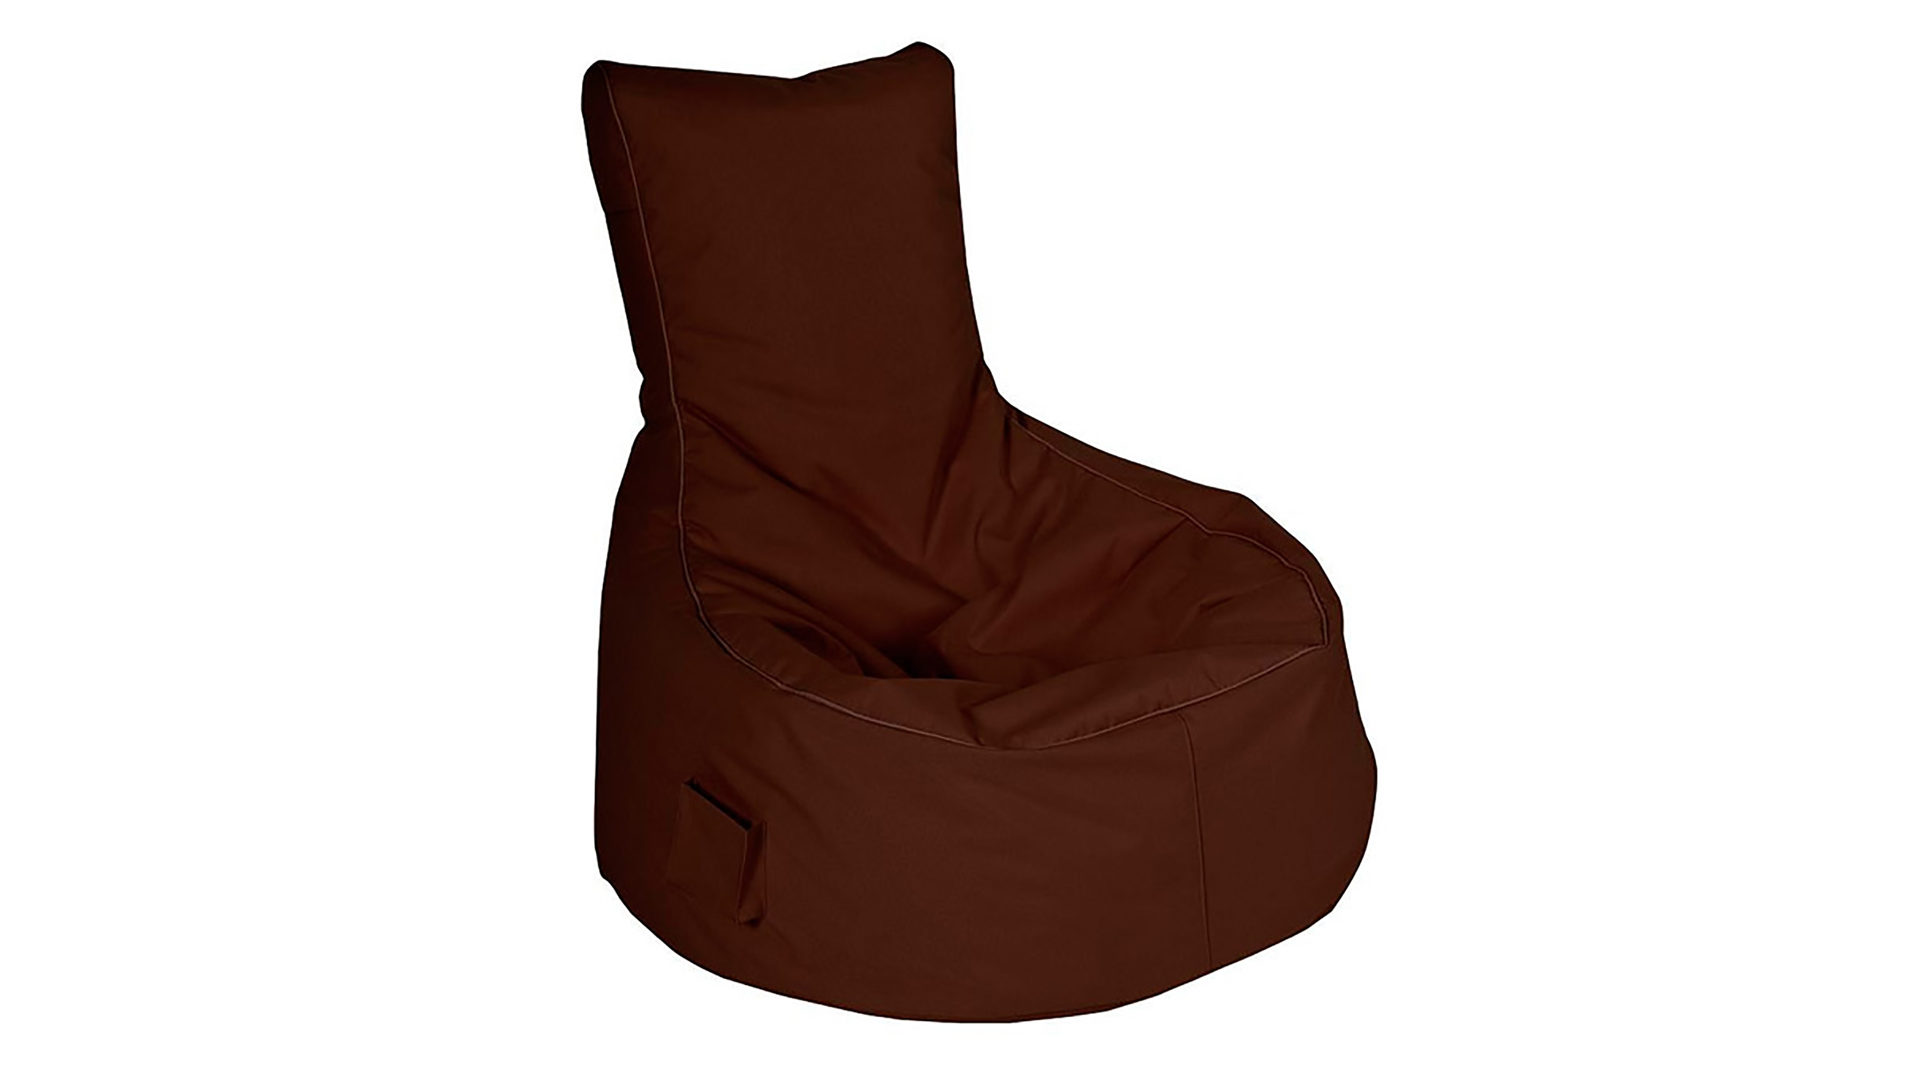 Kinder Swing Sessel Sitting Point Sitzsack Sessel Scuba Swing Dunkelbrauner